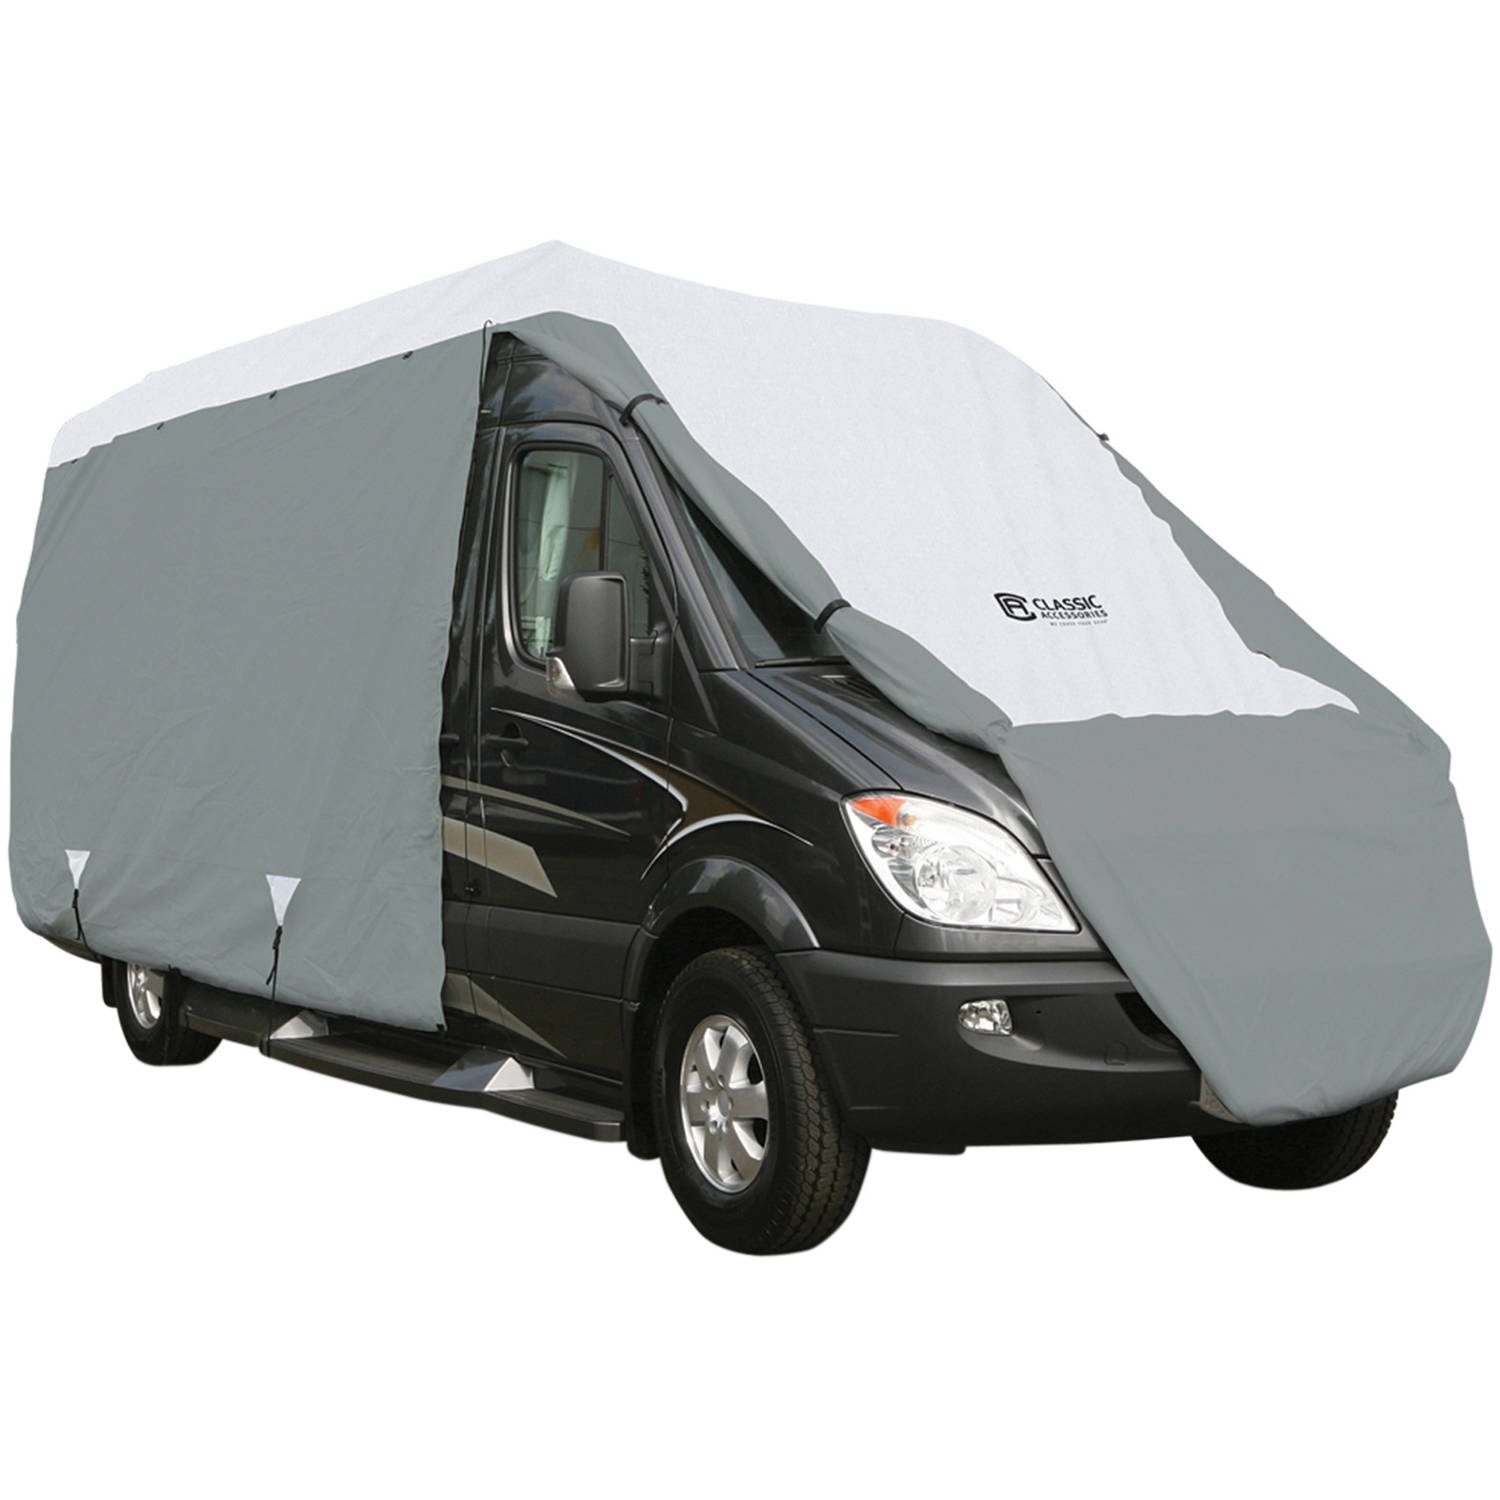 Classic Accessories PolyPro 3 RV Storage Cover, Gray/Snow White